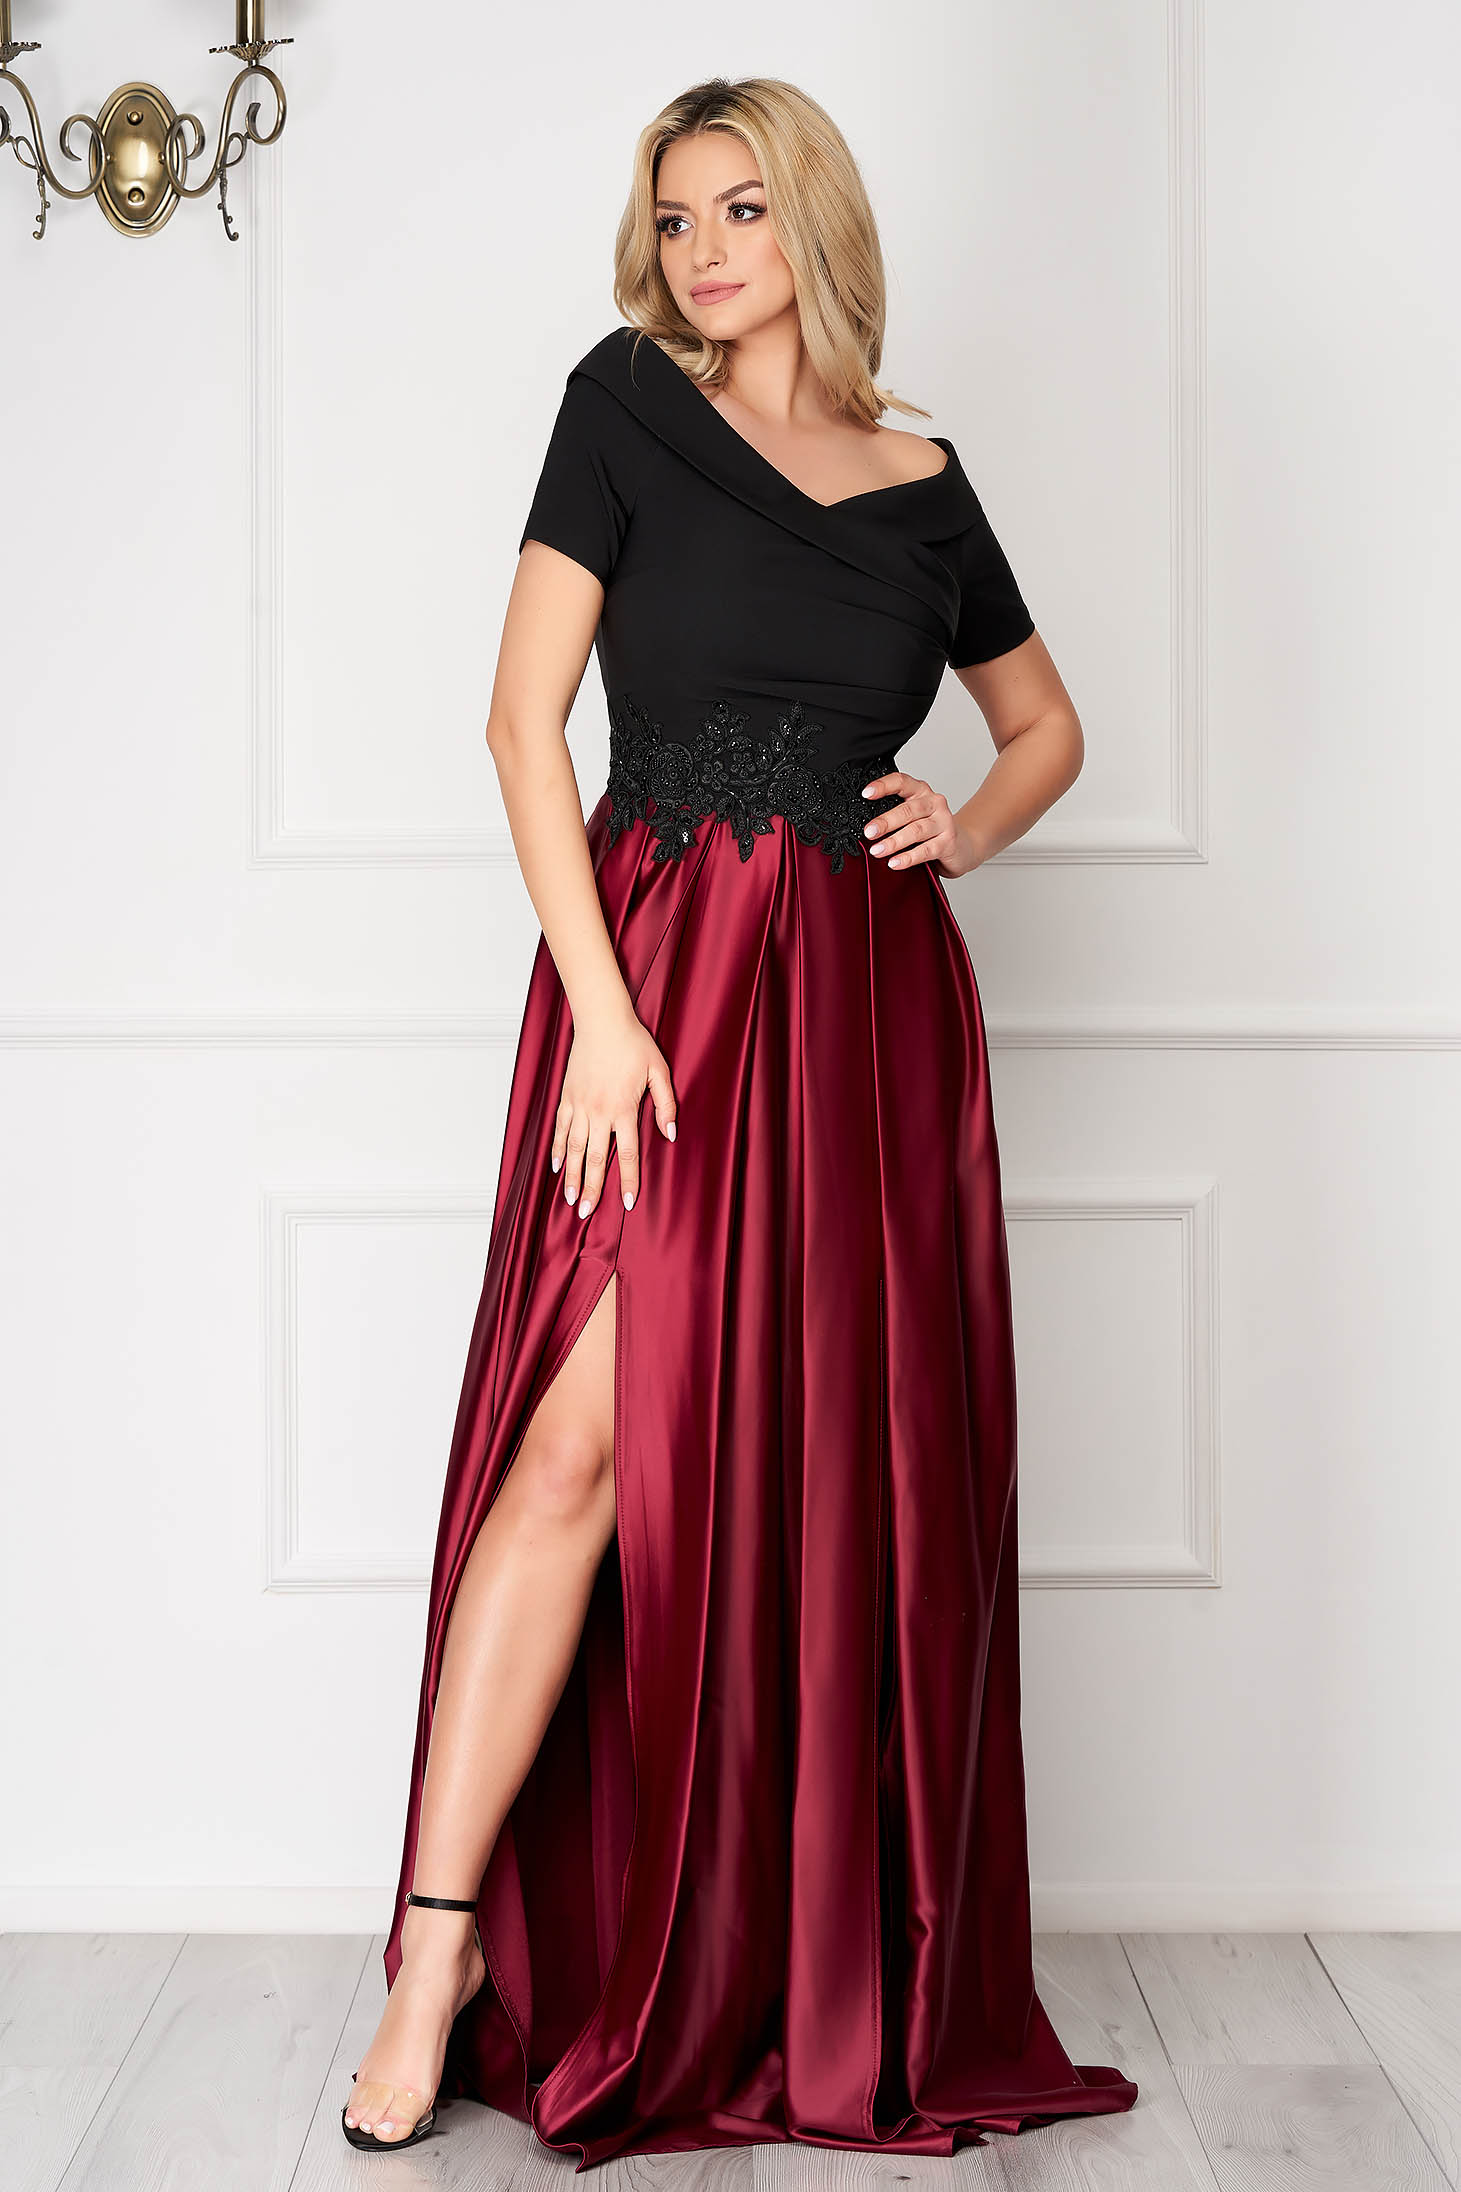 Occasional burgundy dress with satin fabric texture embroidery details